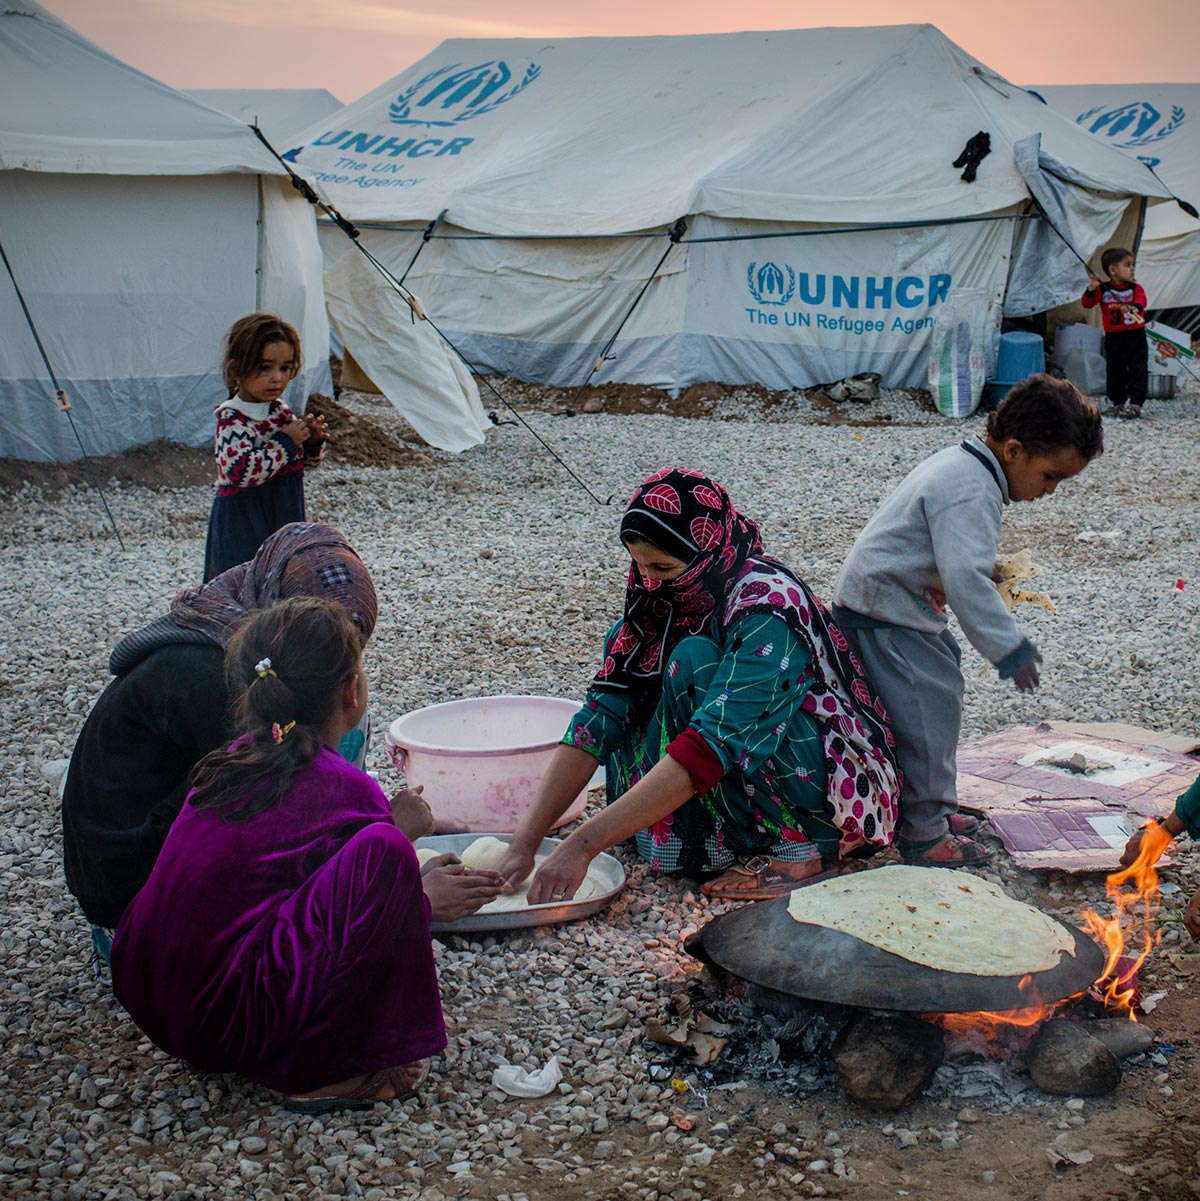 Mother bakes bread with children © UNHCR